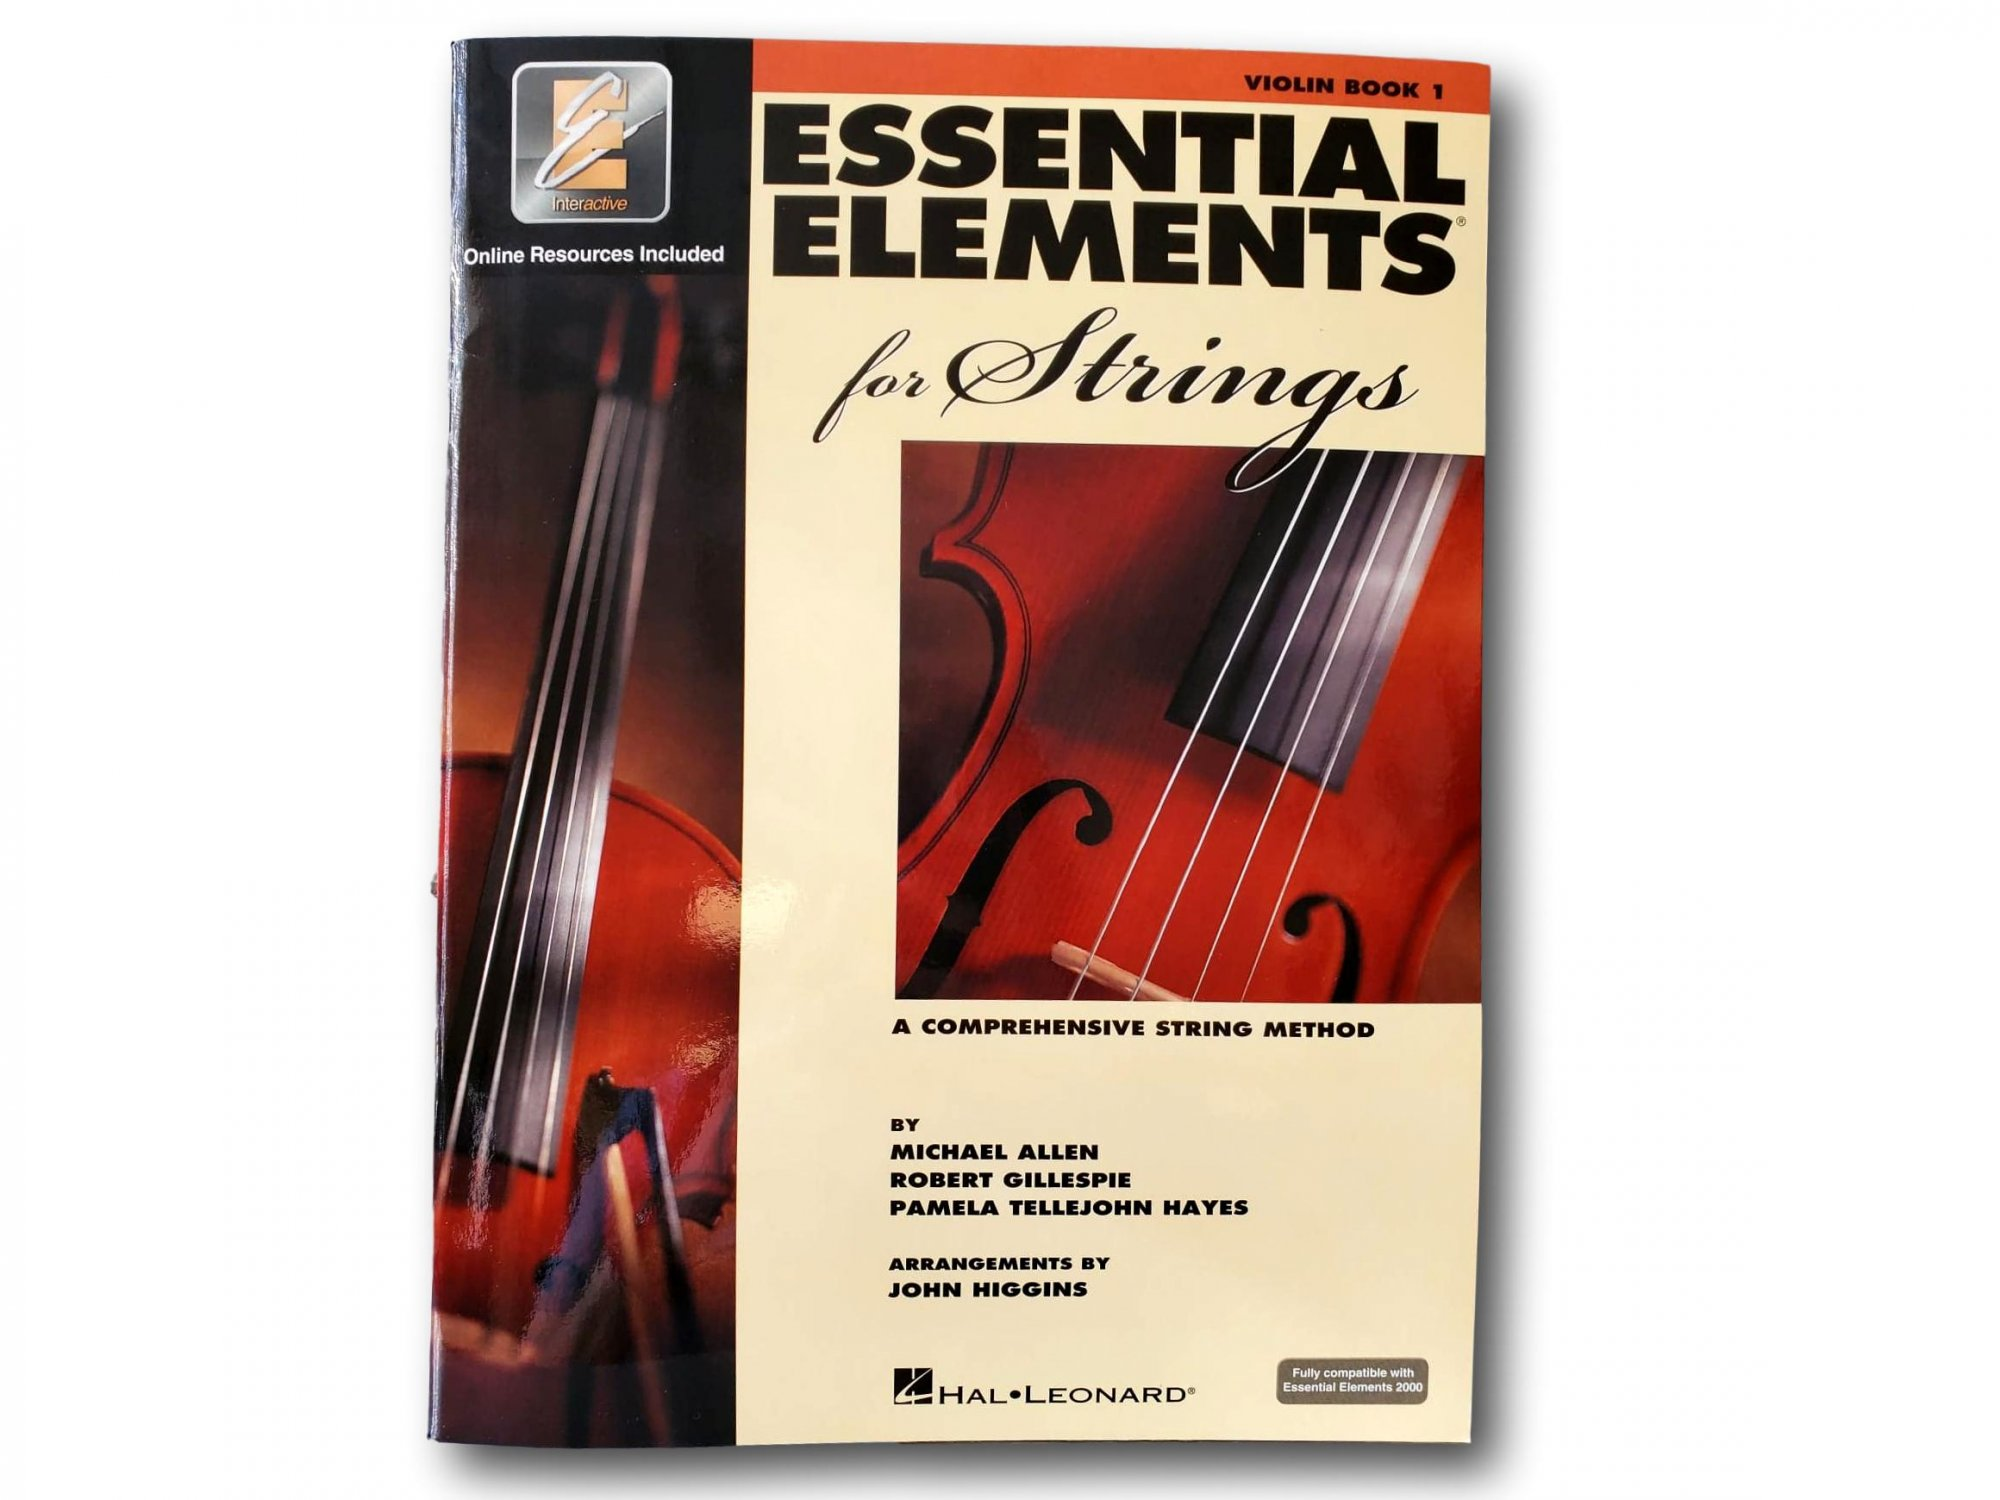 Essential Elements for Strings 2000 - Violin